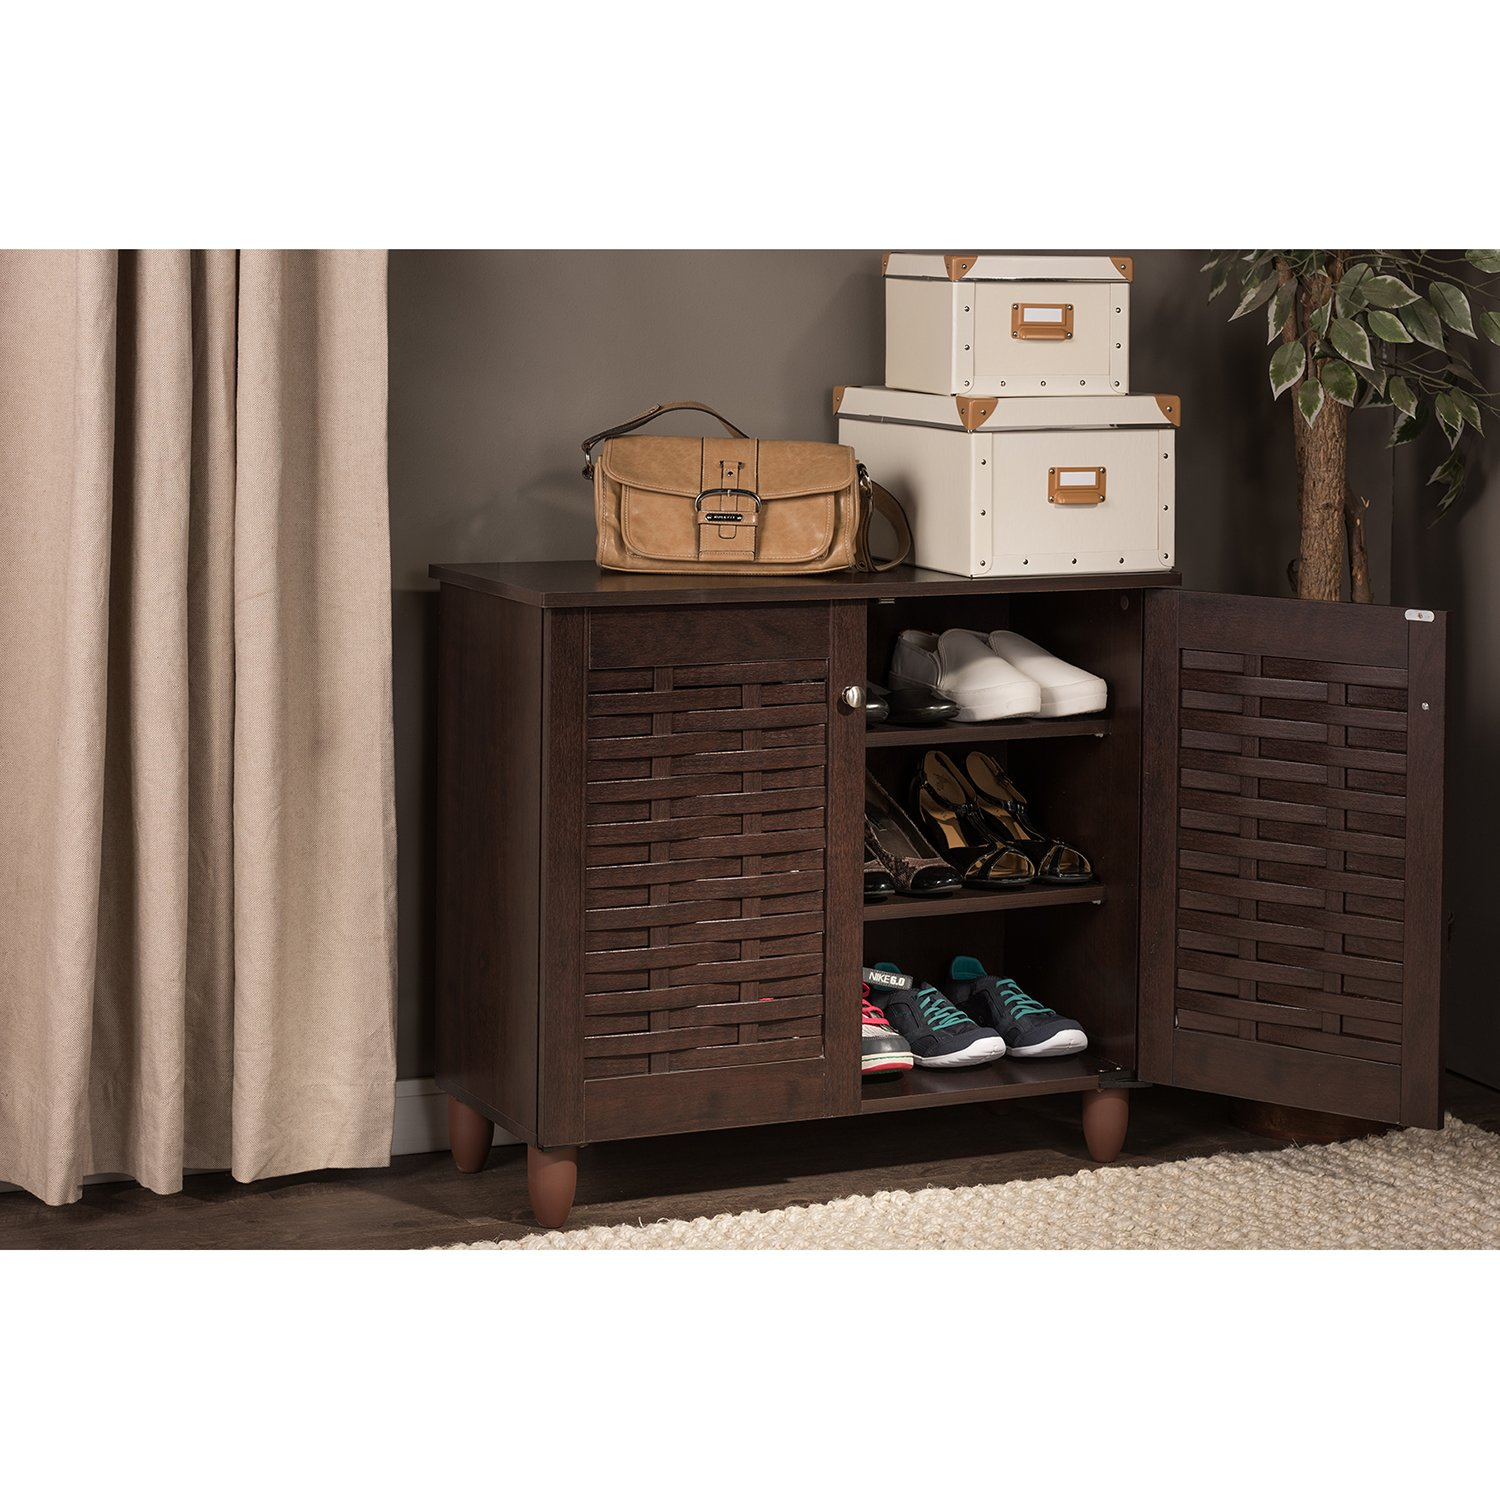 Amazon.com Wholesale Interiors Baxton Studio Winda Modern and Contemporary 2-Door Dark Brown Wooden Entryway Shoes Storage Cabinet Kitchen u0026 Dining  sc 1 st  Amazon.com & Amazon.com: Wholesale Interiors Baxton Studio Winda Modern and ...